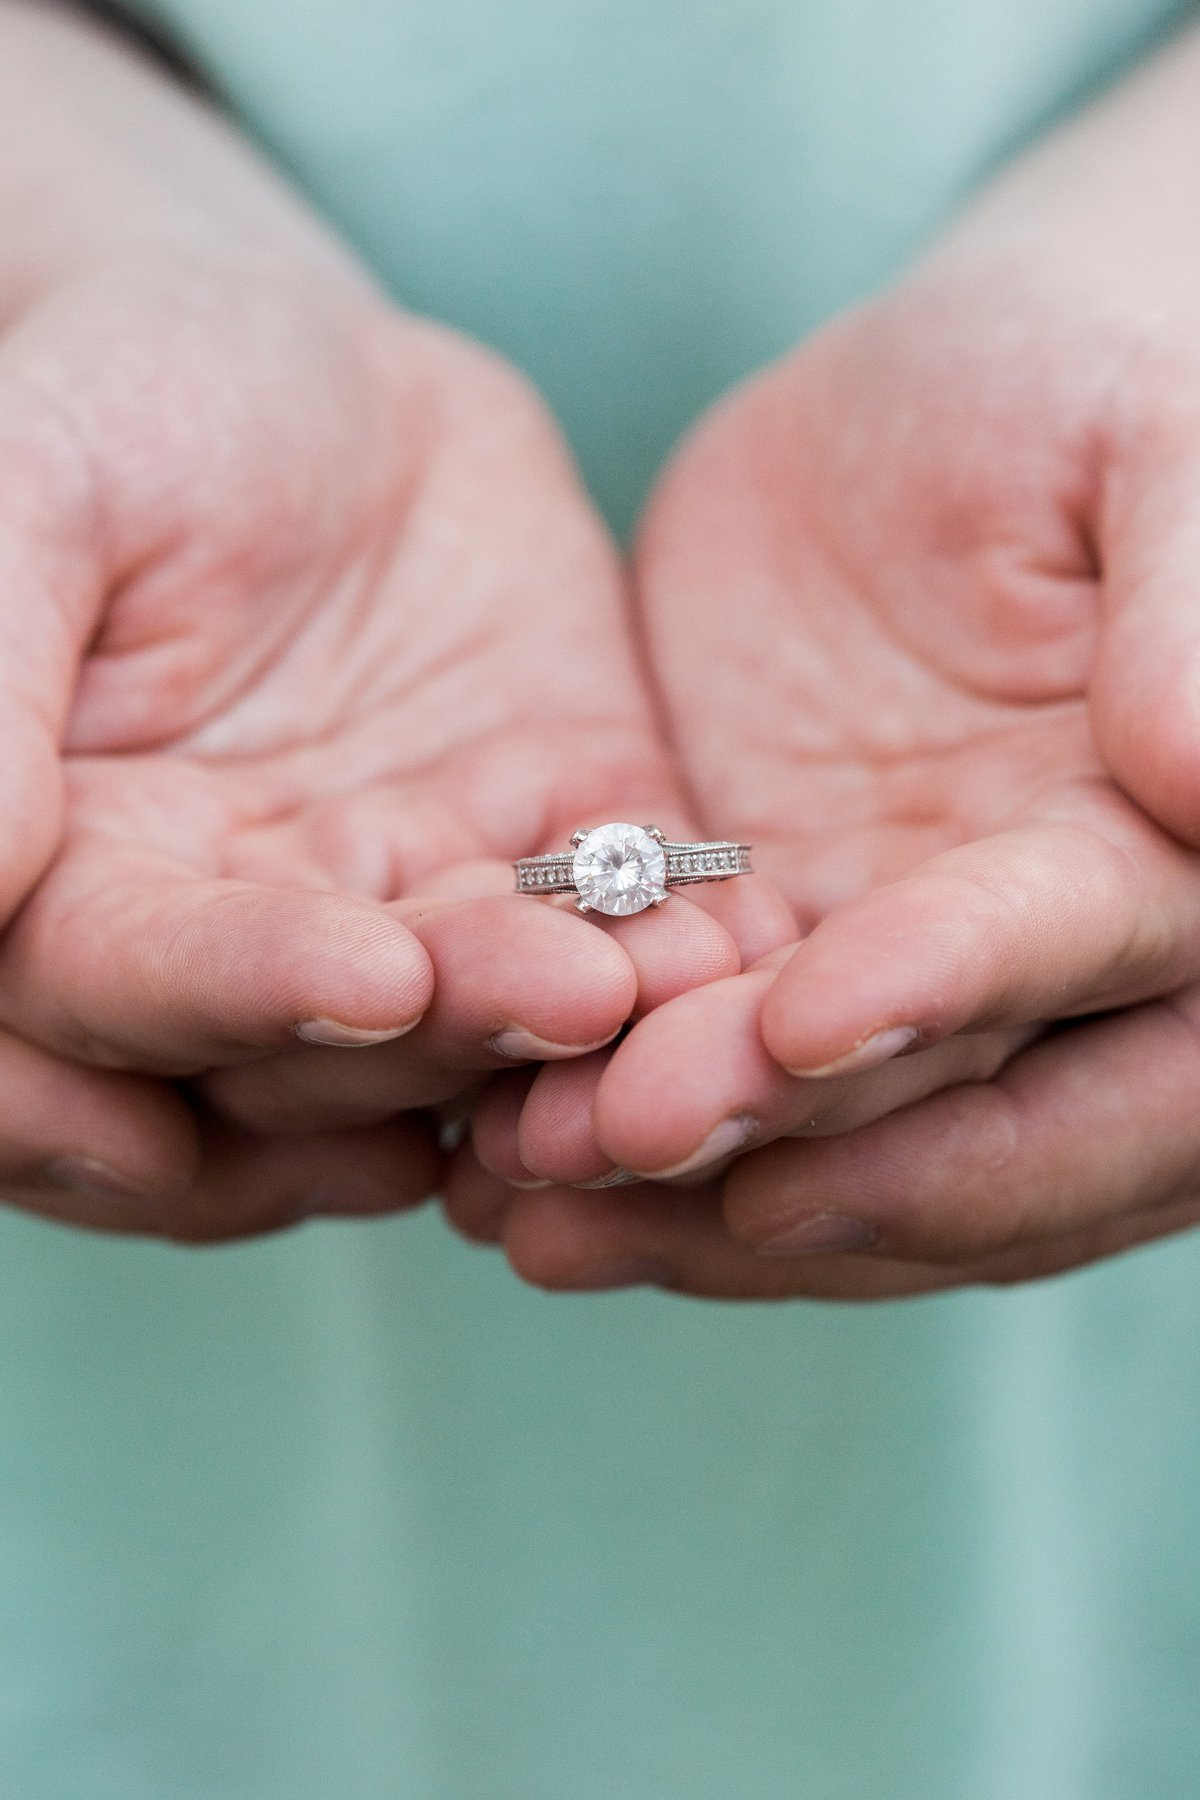 tri-cities wedding photographer Archives - East Tennessee Wedding ...